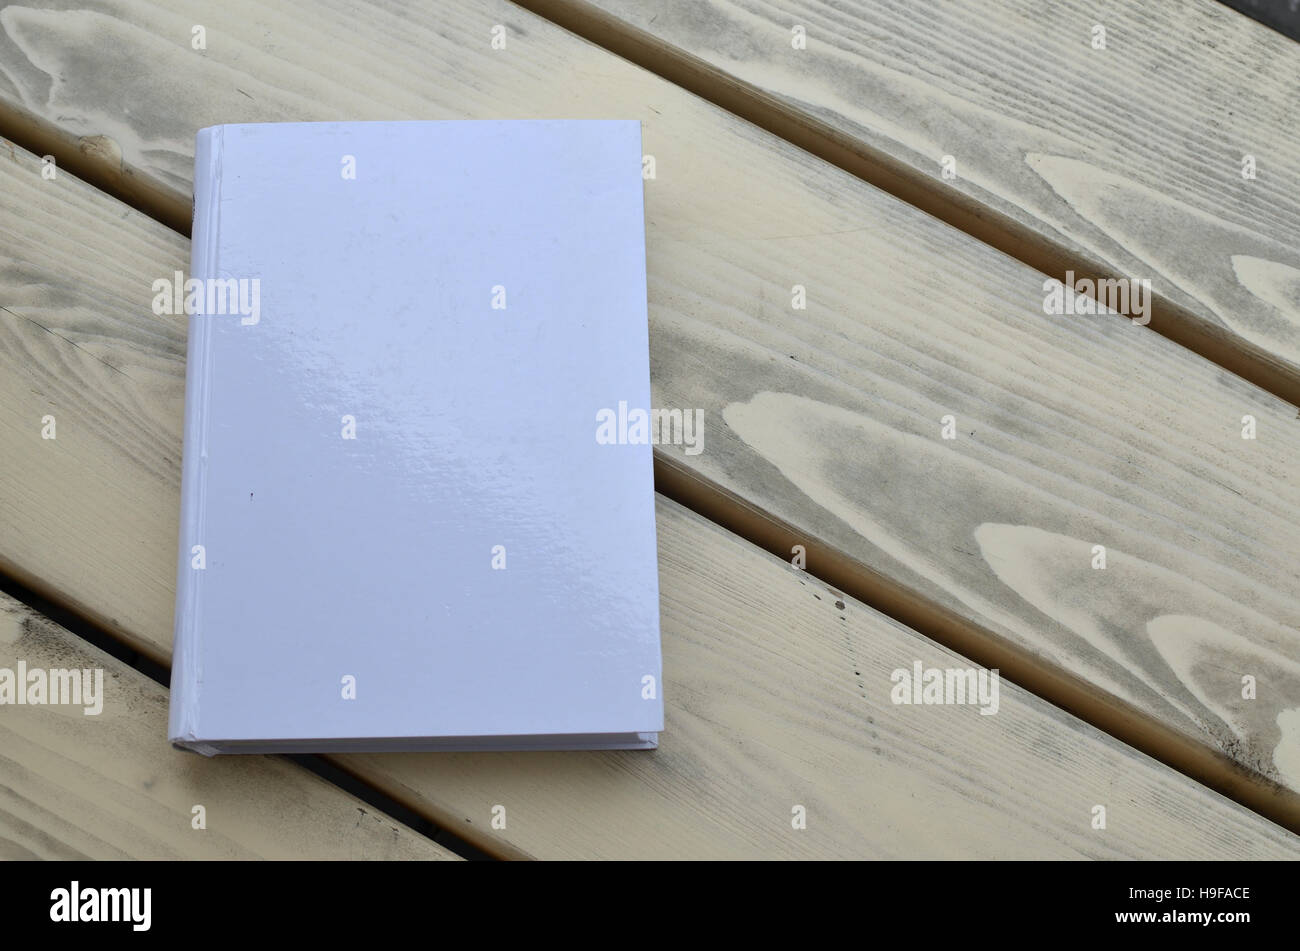 White hard cover book on a wooden bench - Stock Image